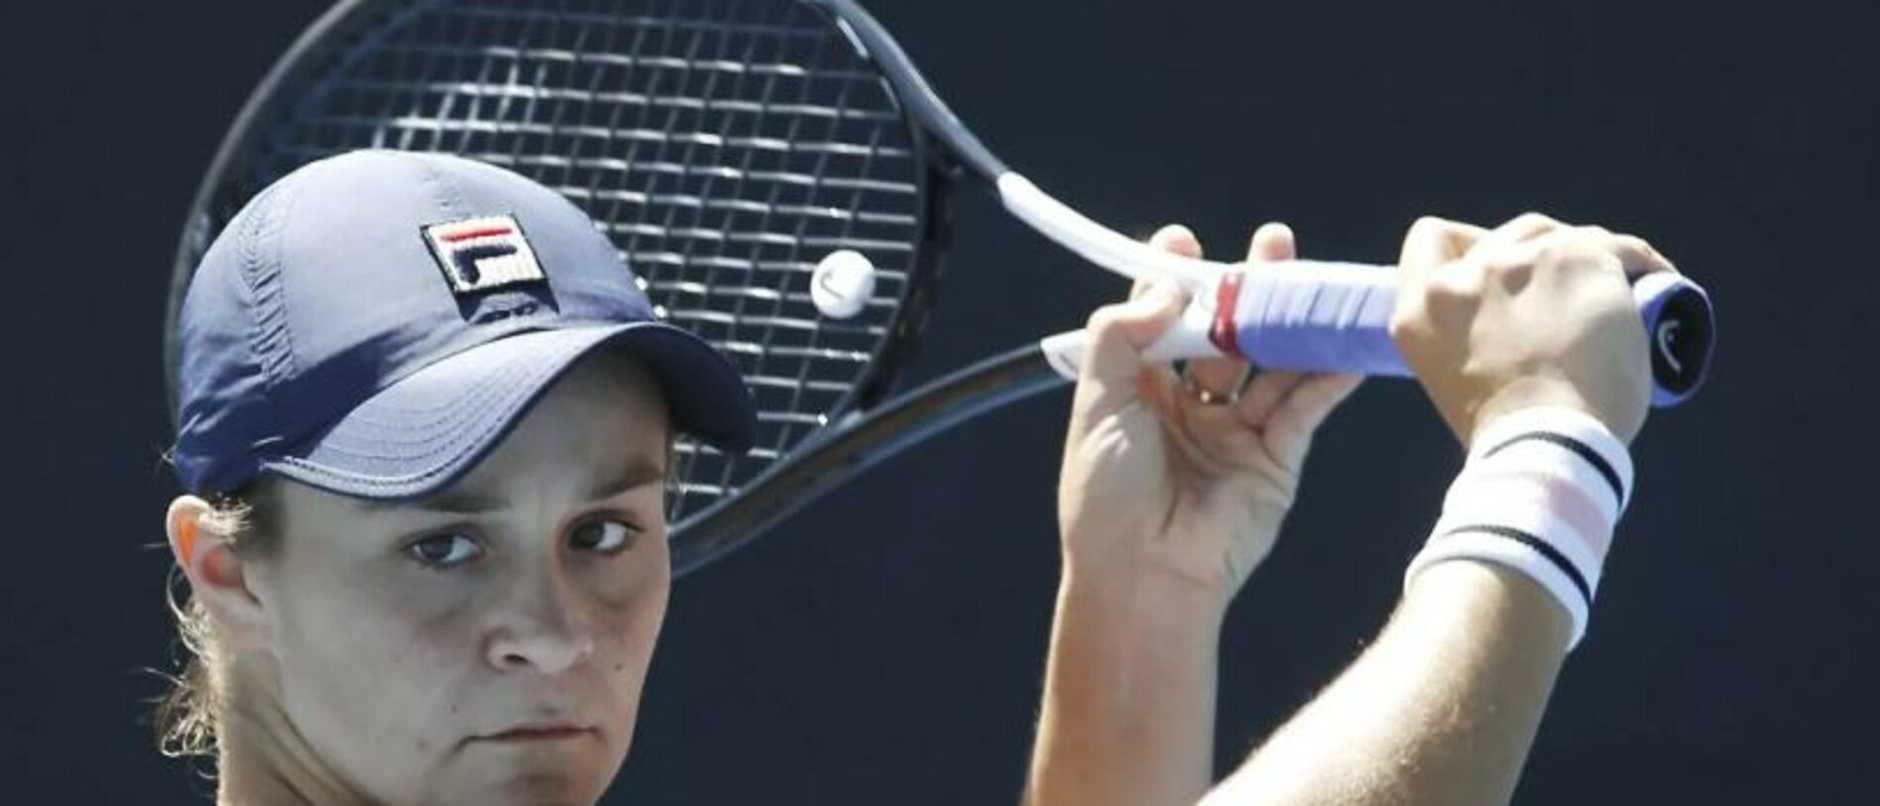 Ashleigh Barty has a big fan in Martina Navratilova.